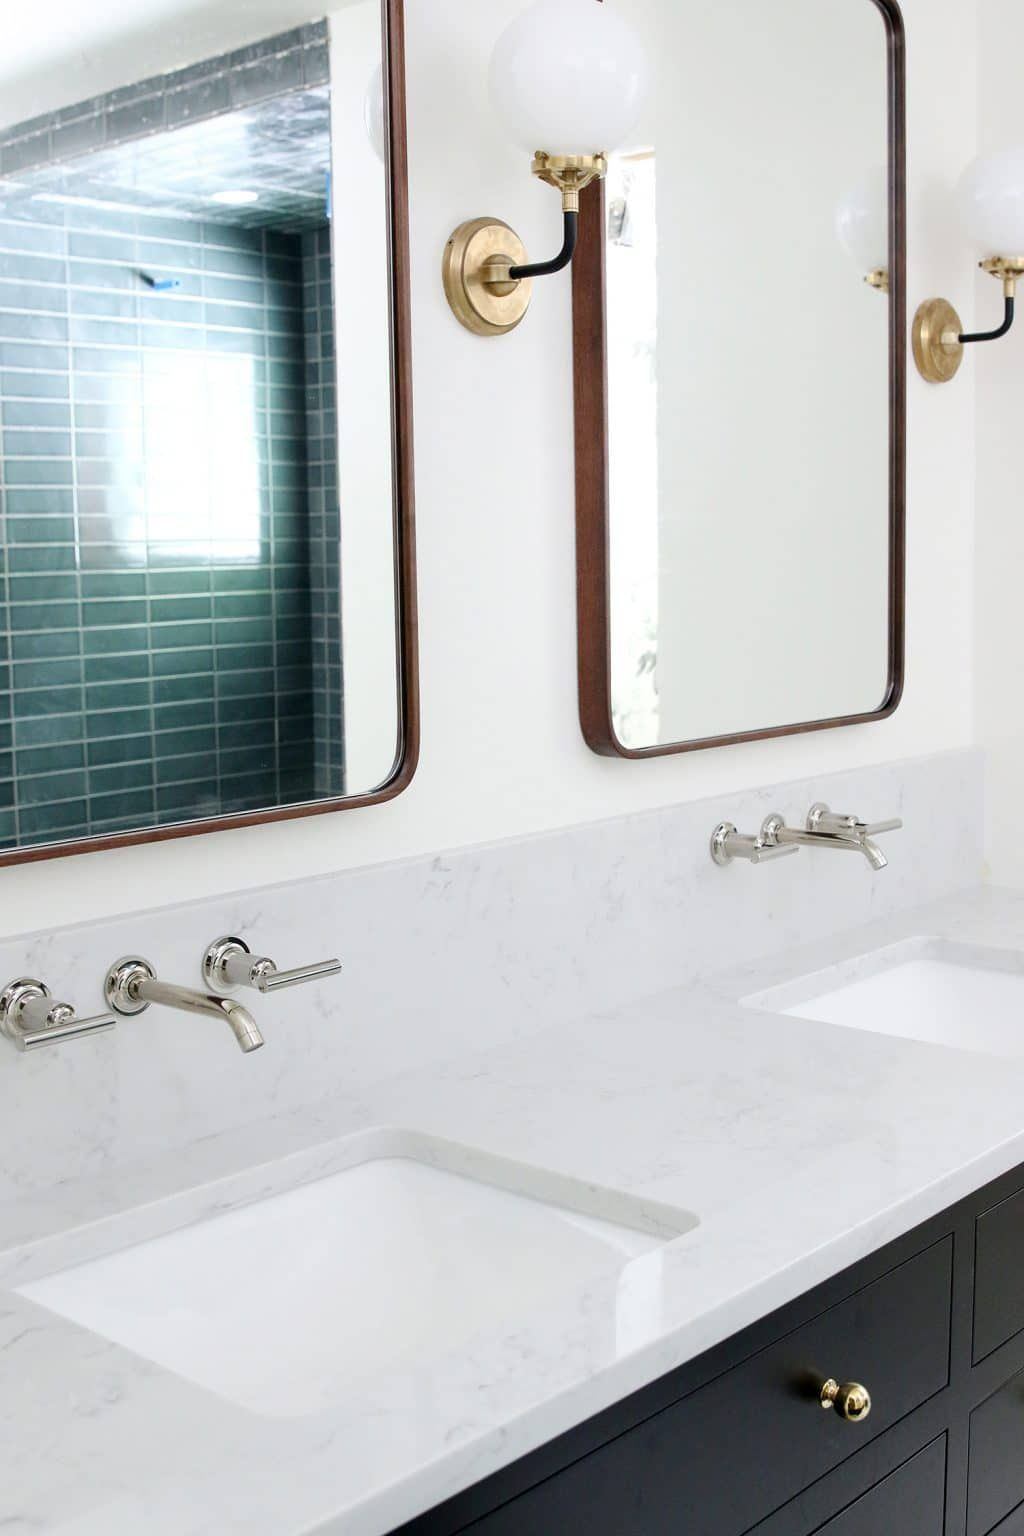 Our Undermount Bathroom Sink Wall Mount Faucets Installed Wall